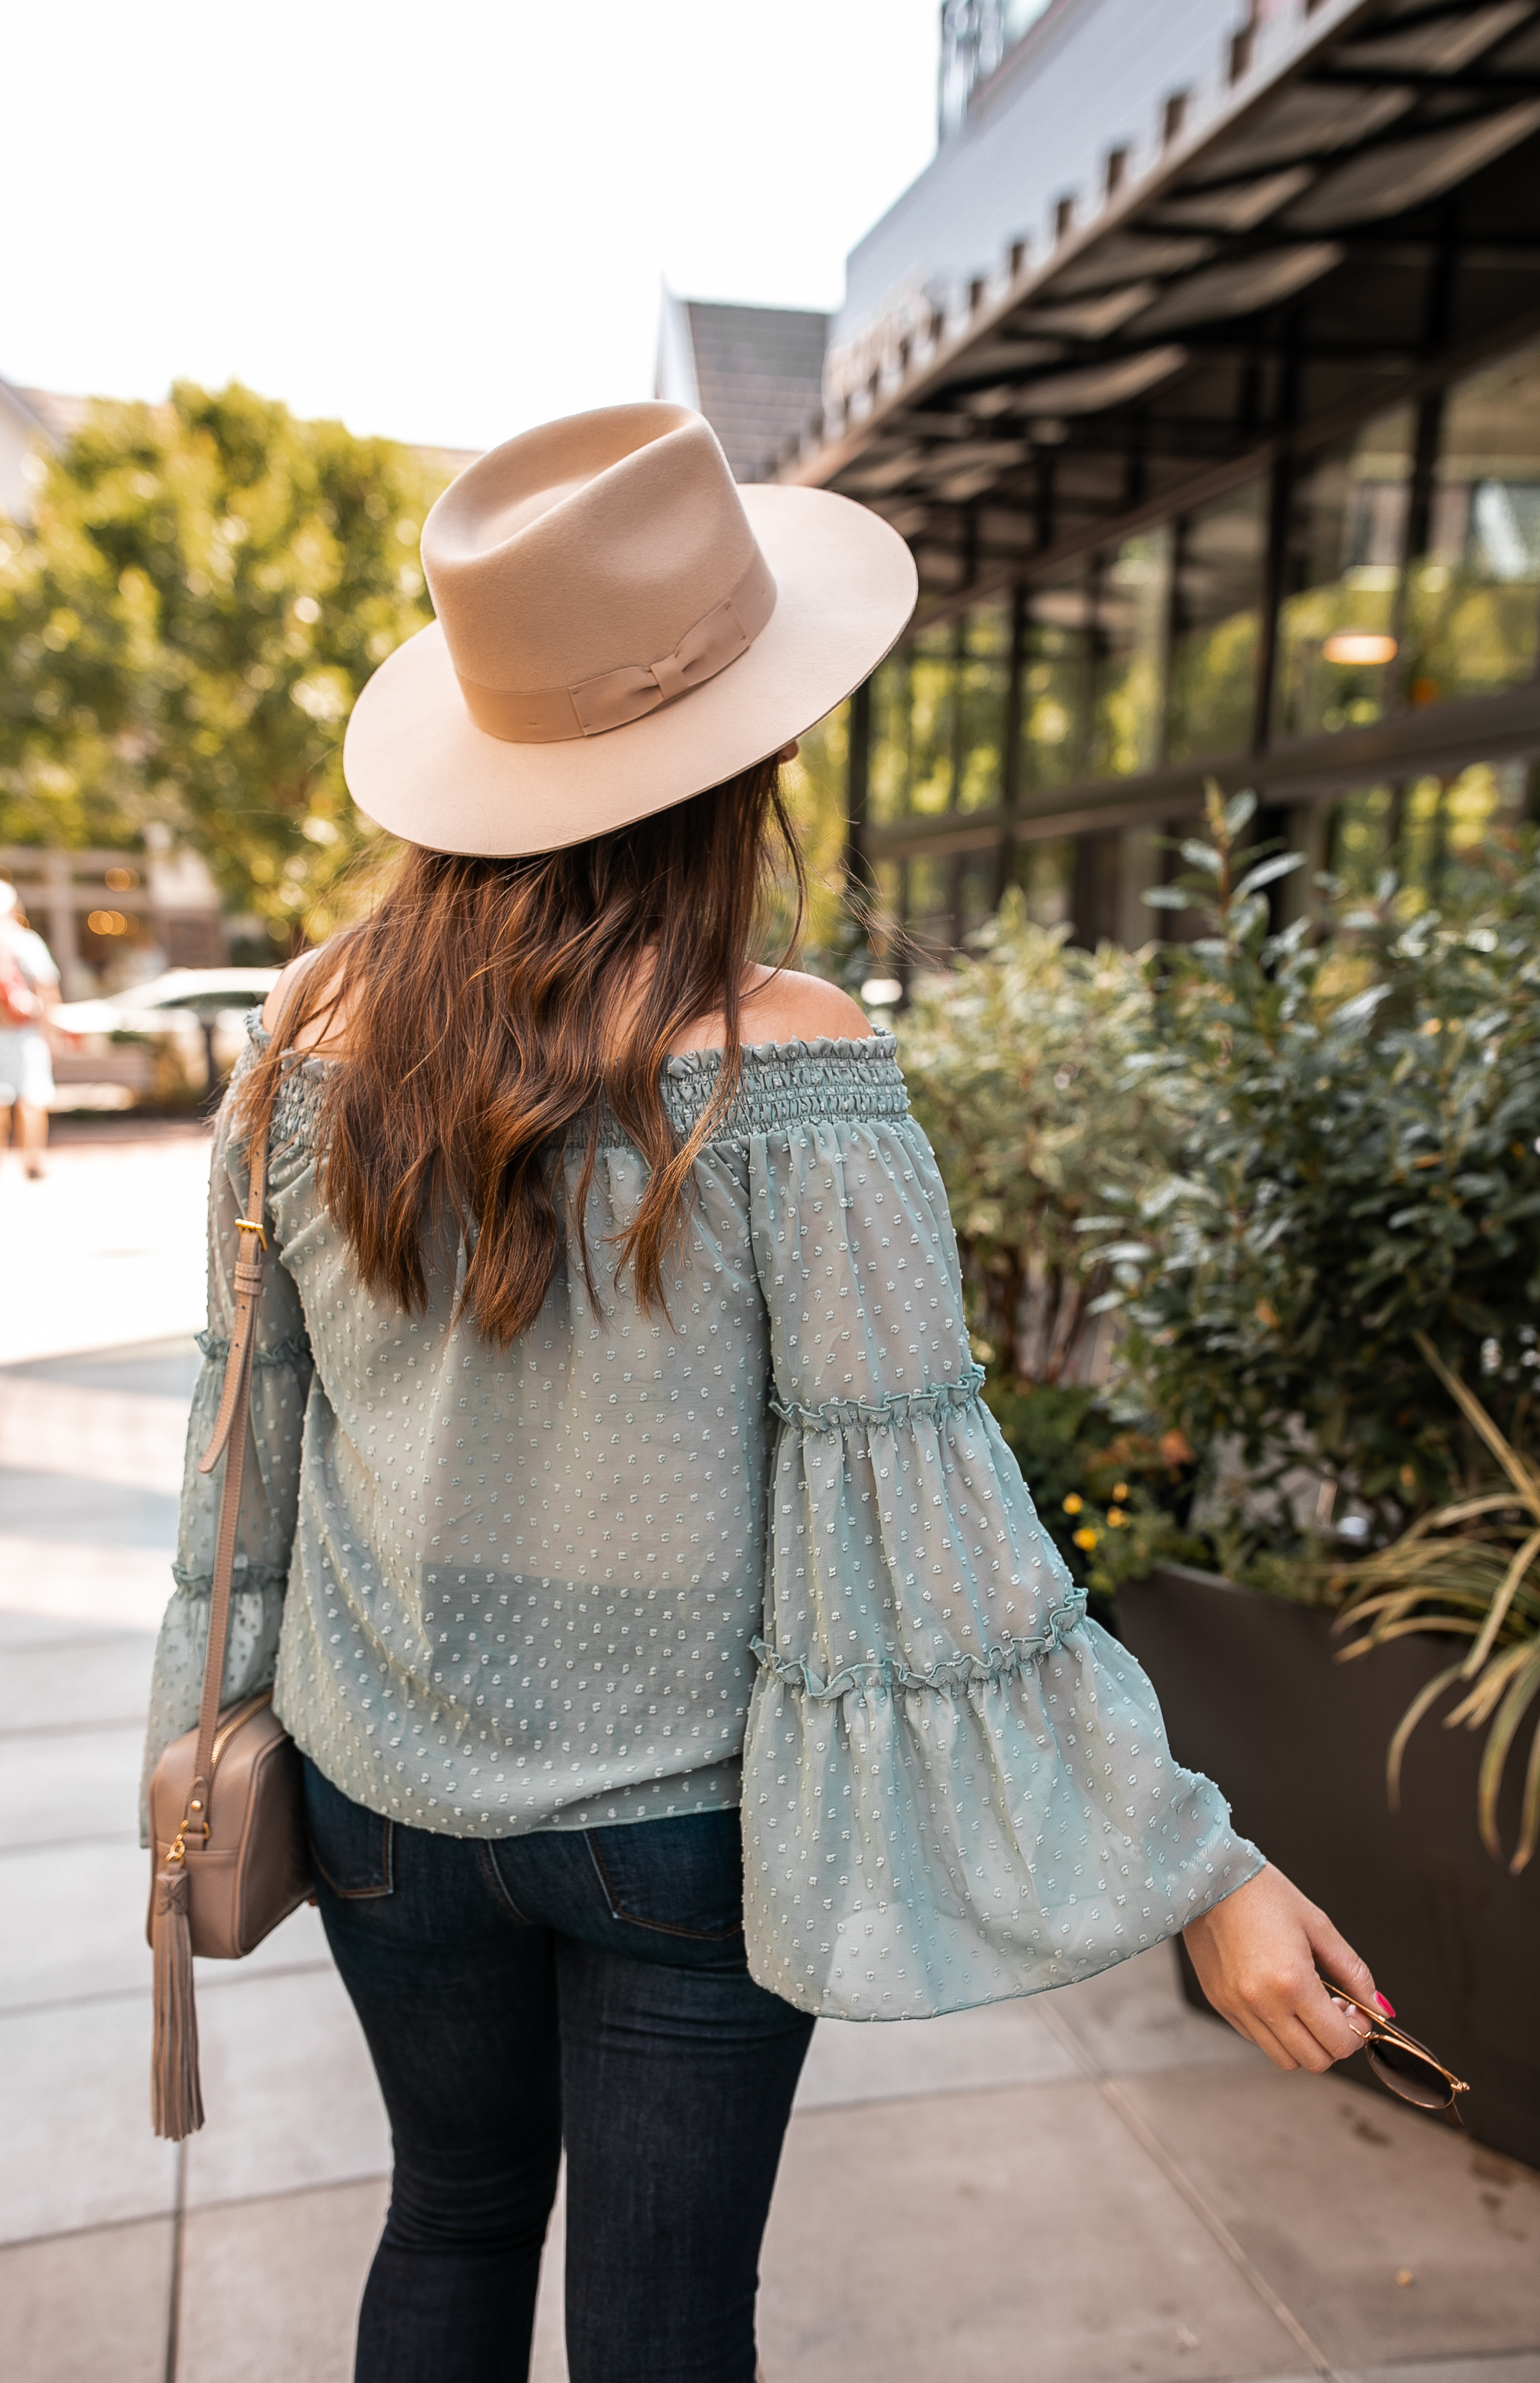 Off the Shoulder Top Fall Outfit @stylebyjulianne